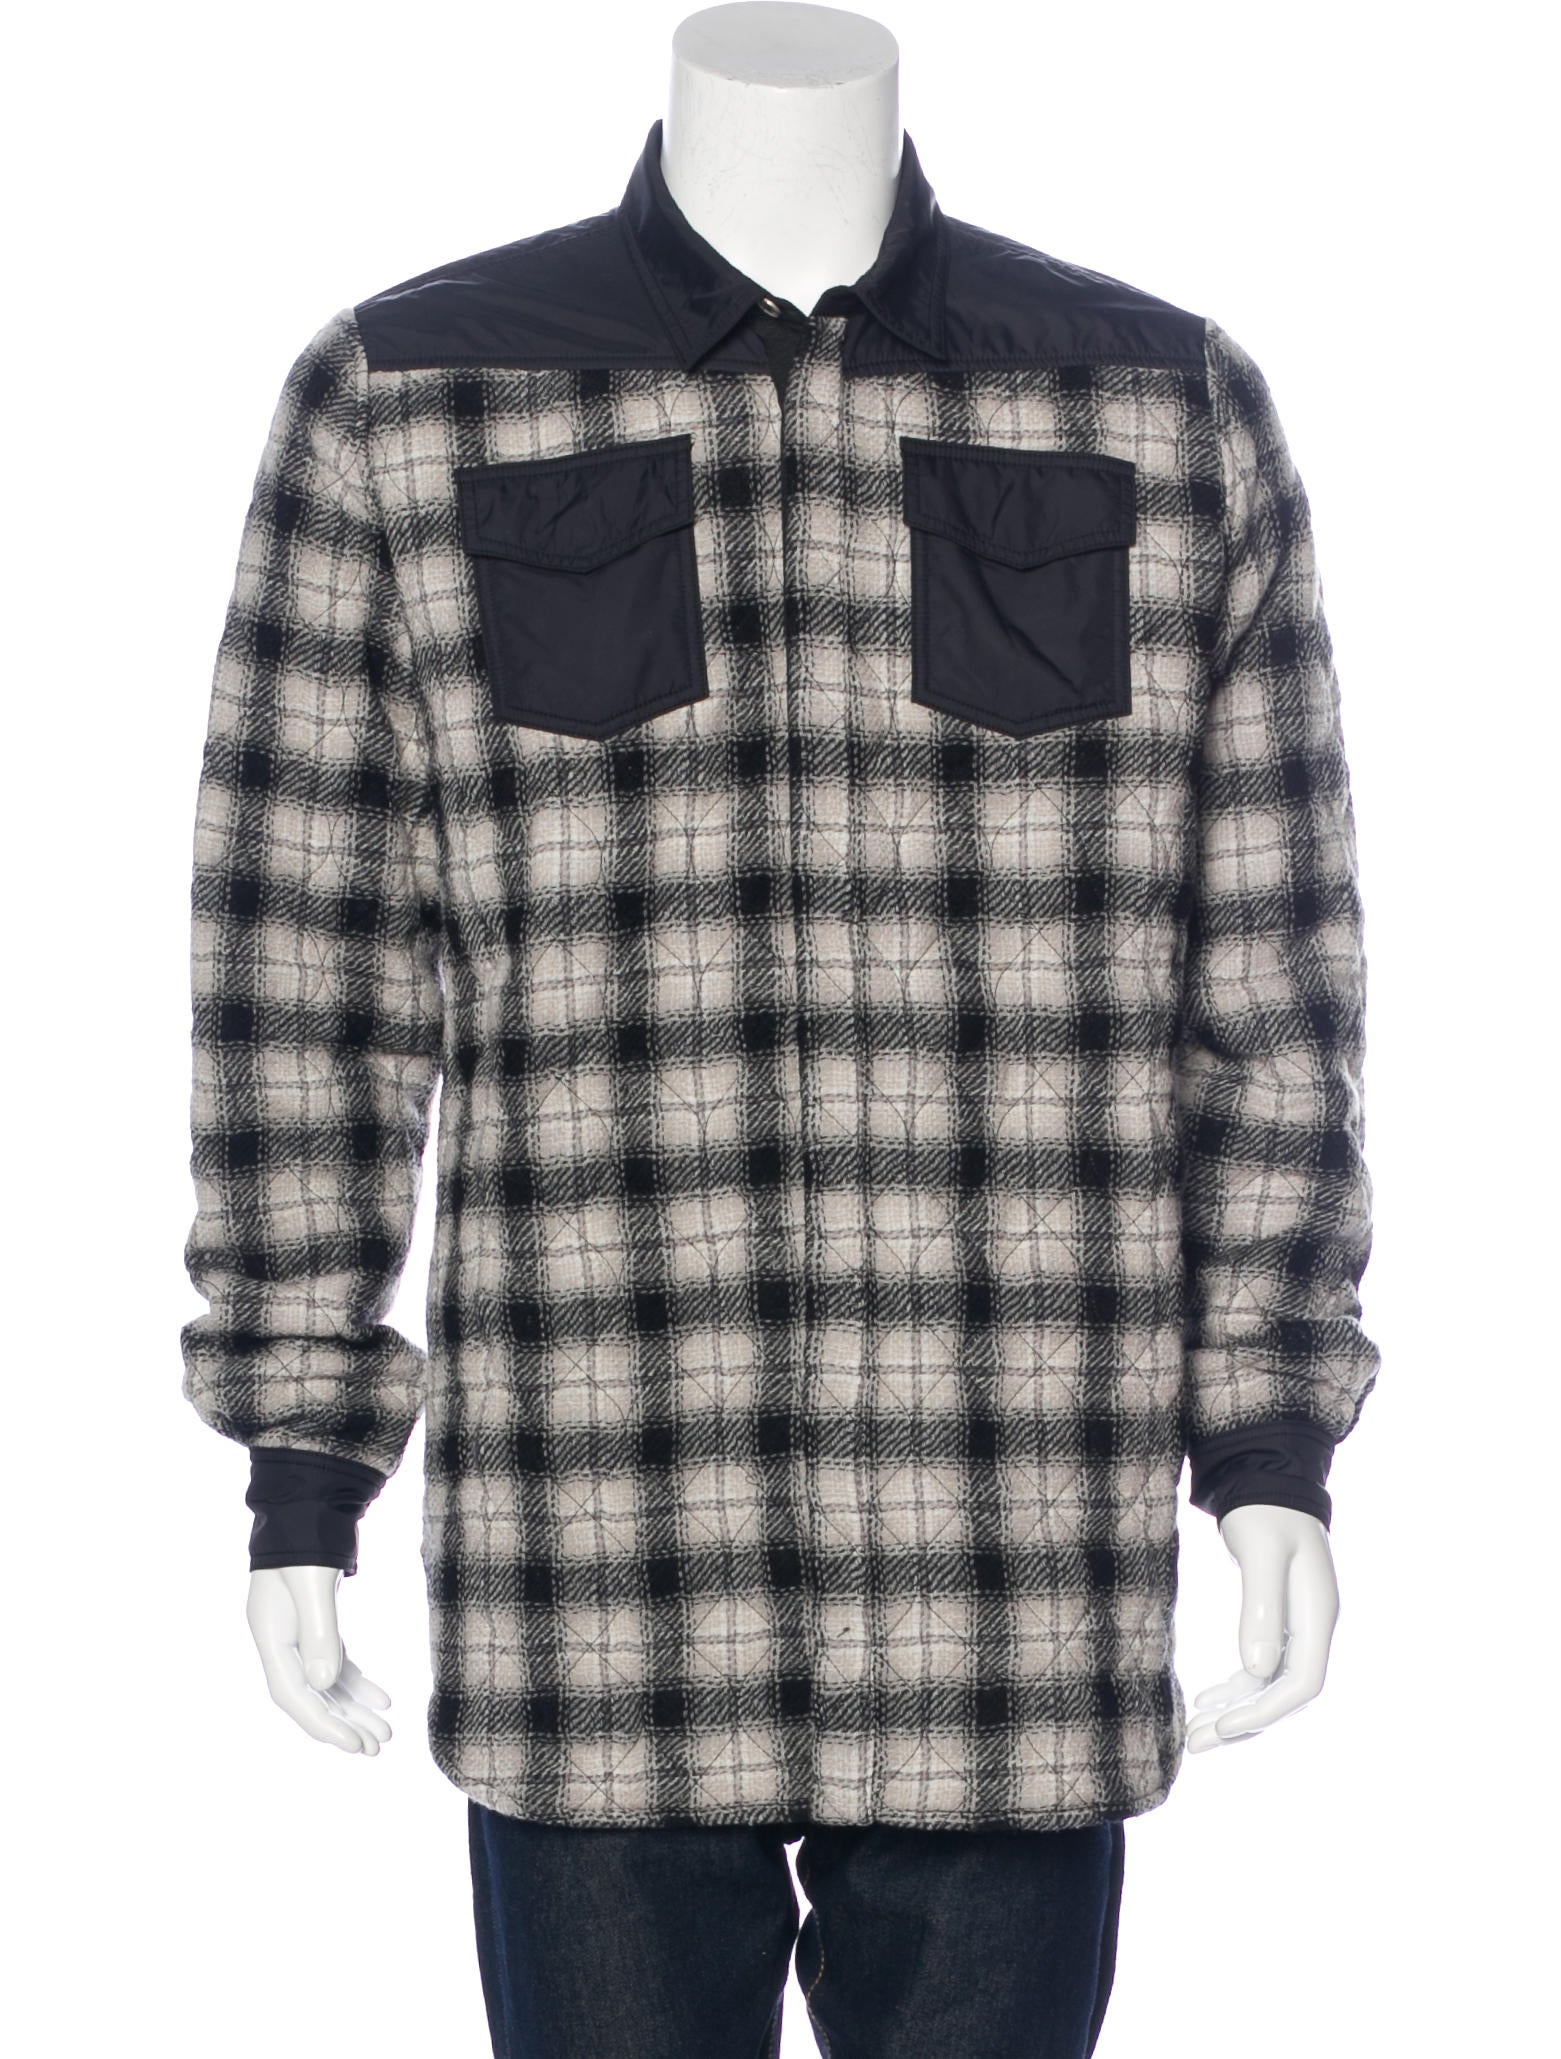 Off-White Quilted Flannel Shirt Jacket w/ Tags - Clothing ... : quilted flannel shirt jacket - Adamdwight.com